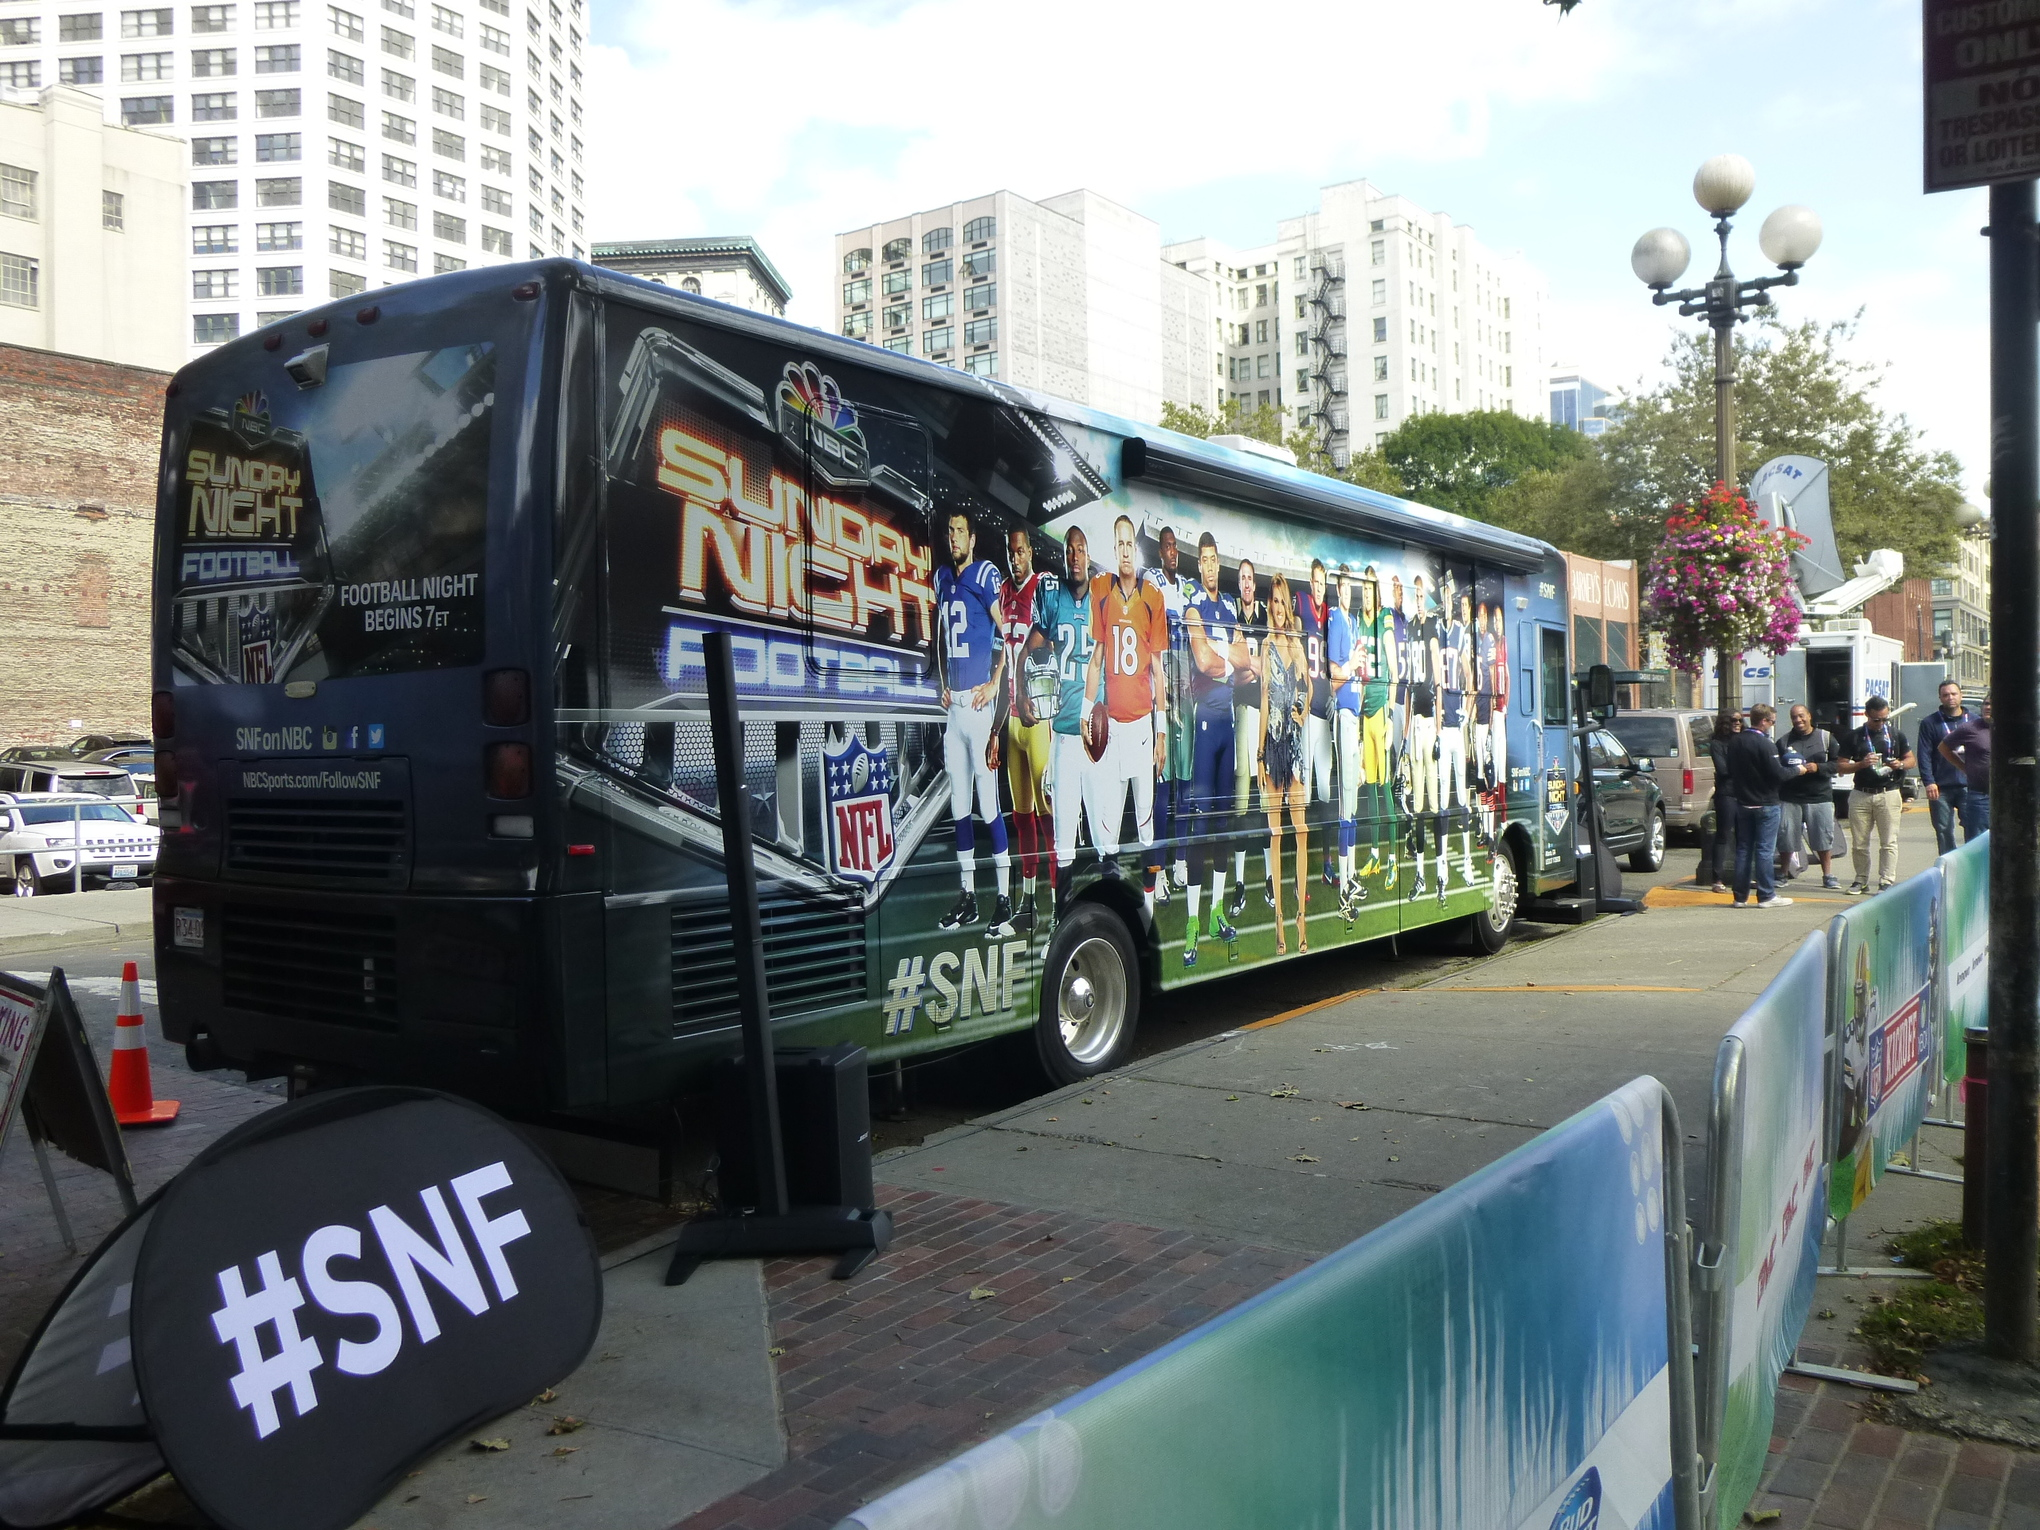 The Sunday Night Football on NBC bus is on display in downtown Seattle.